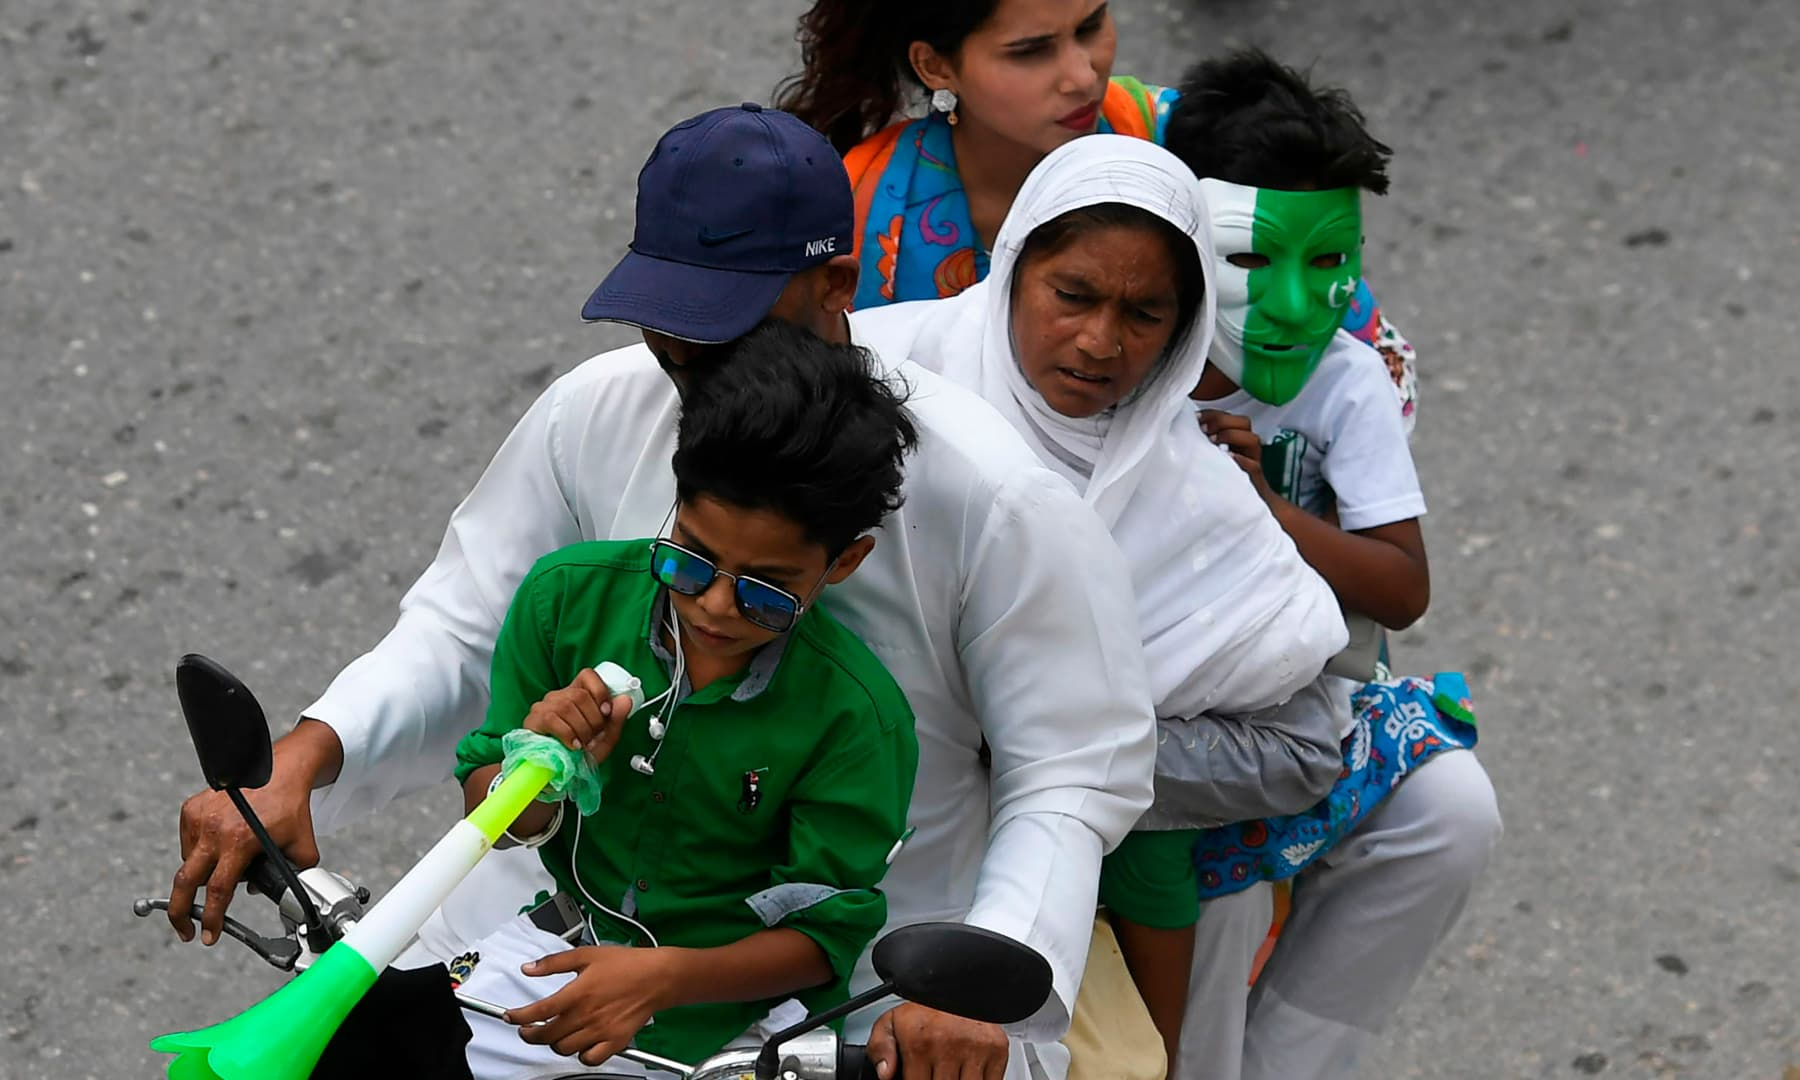 A family rides on a bike along a street during Independence Day celebrations in Islamabad on August 14. — AFP